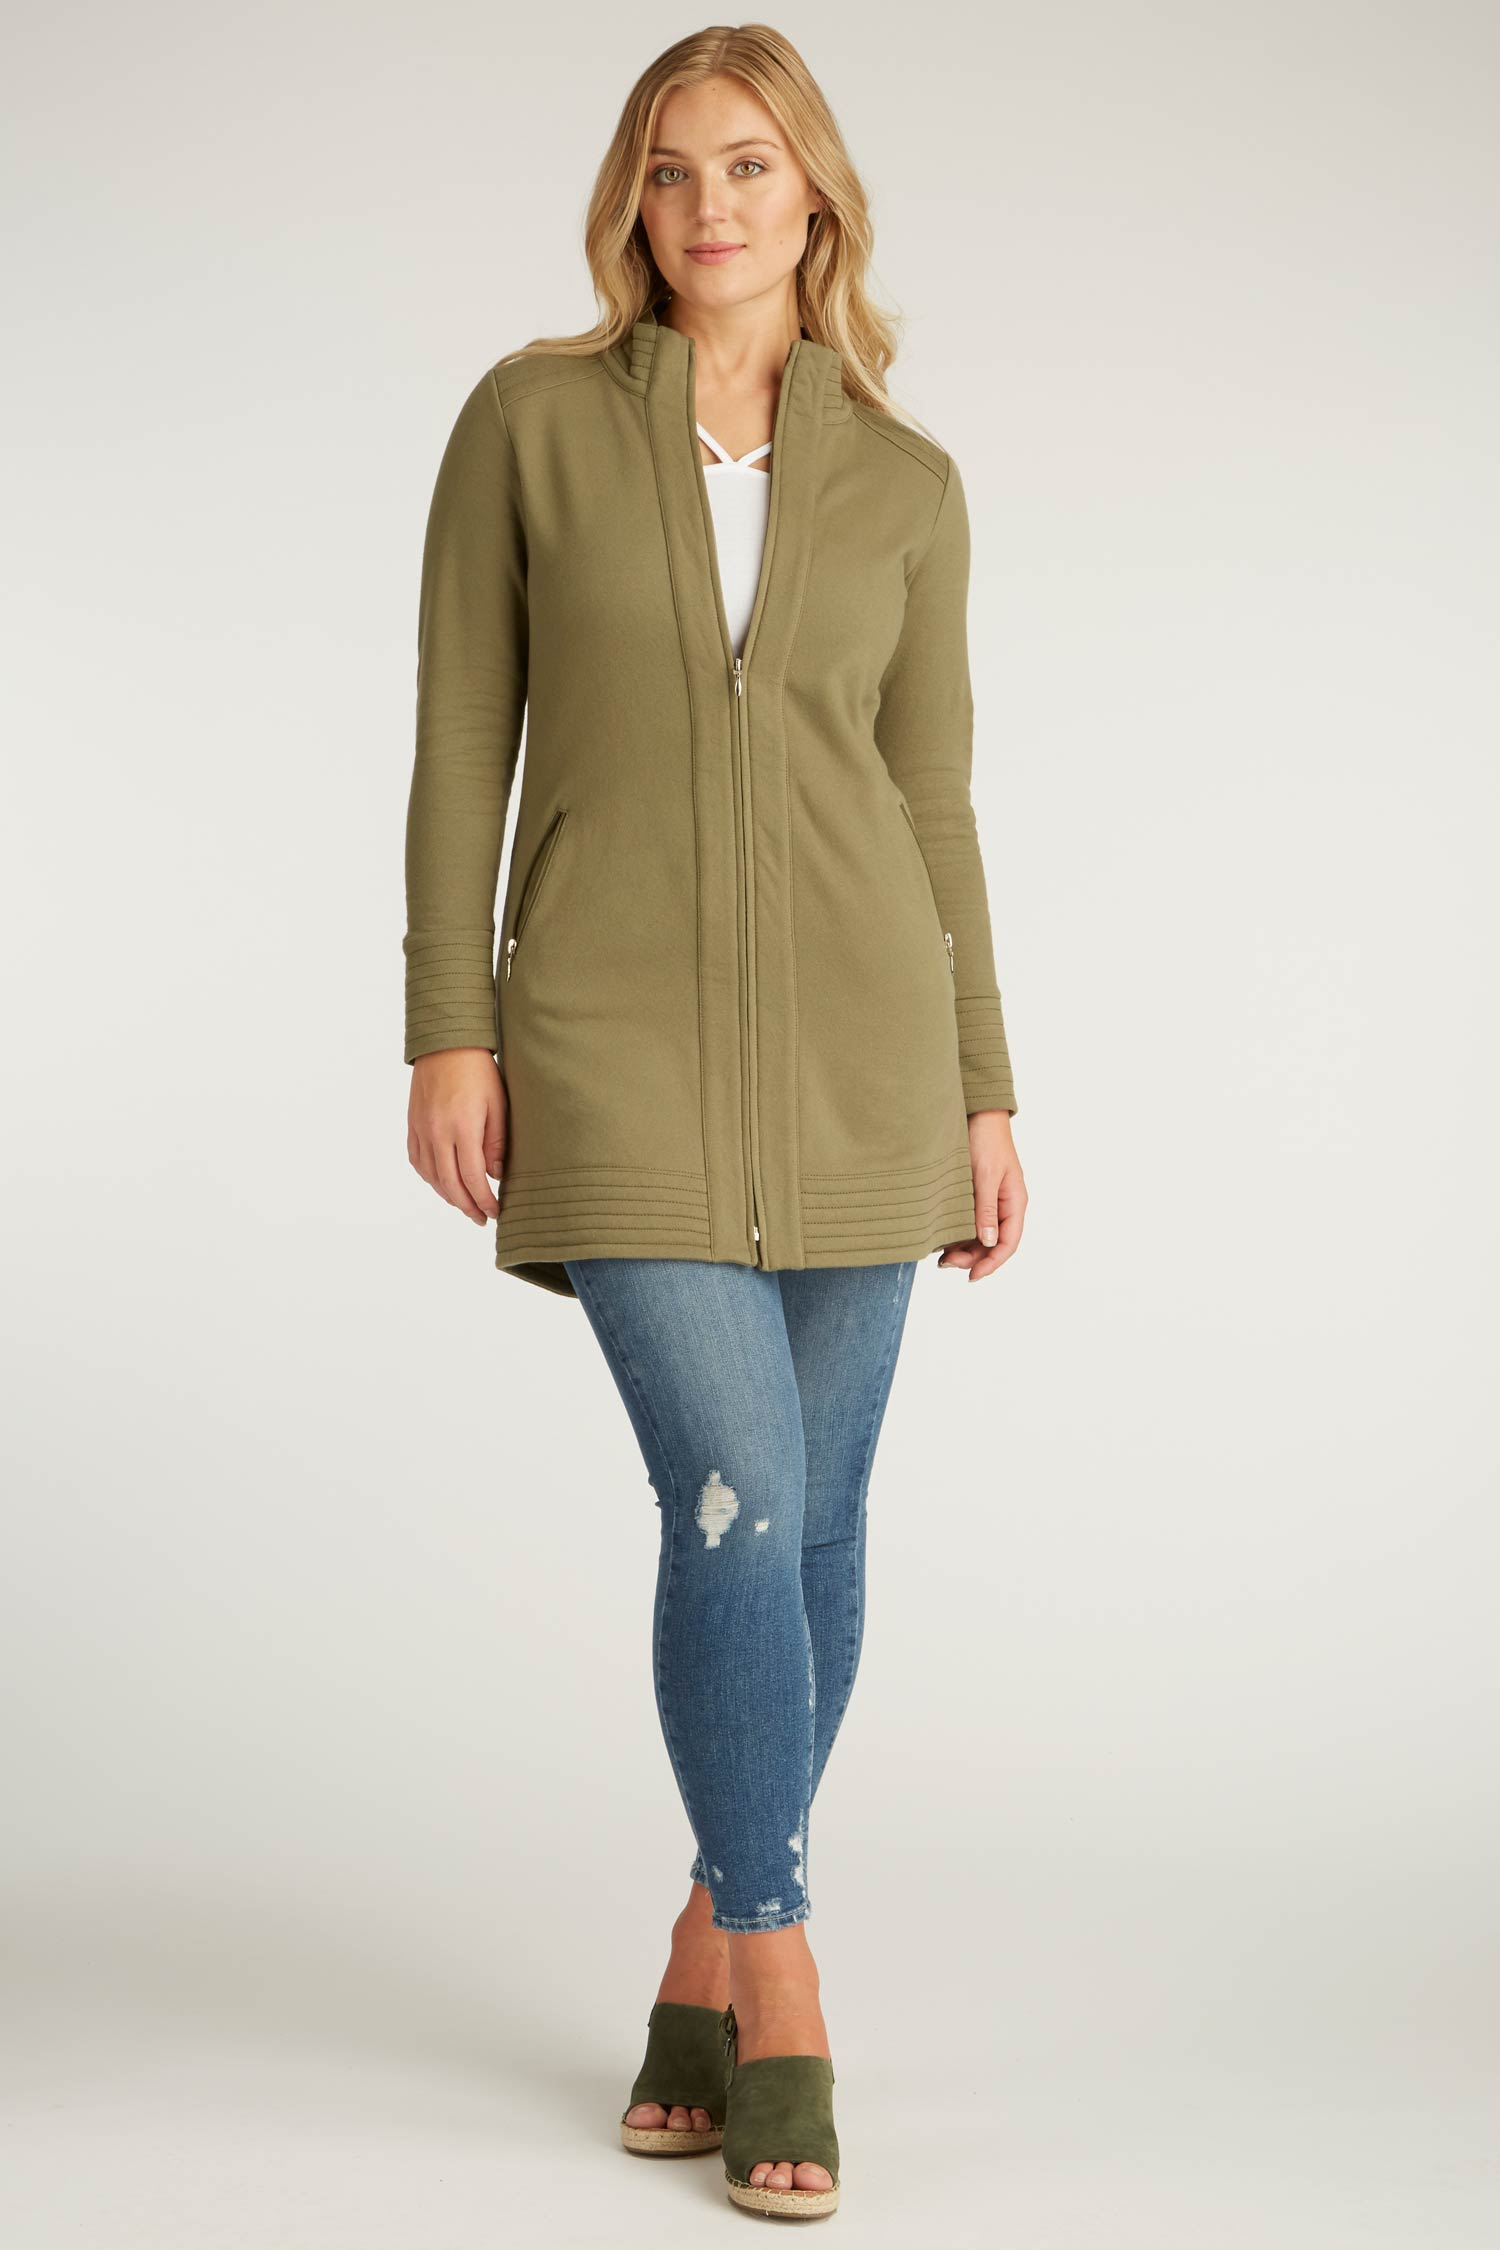 Womens Fleece Jacket | A Line Coat | Green